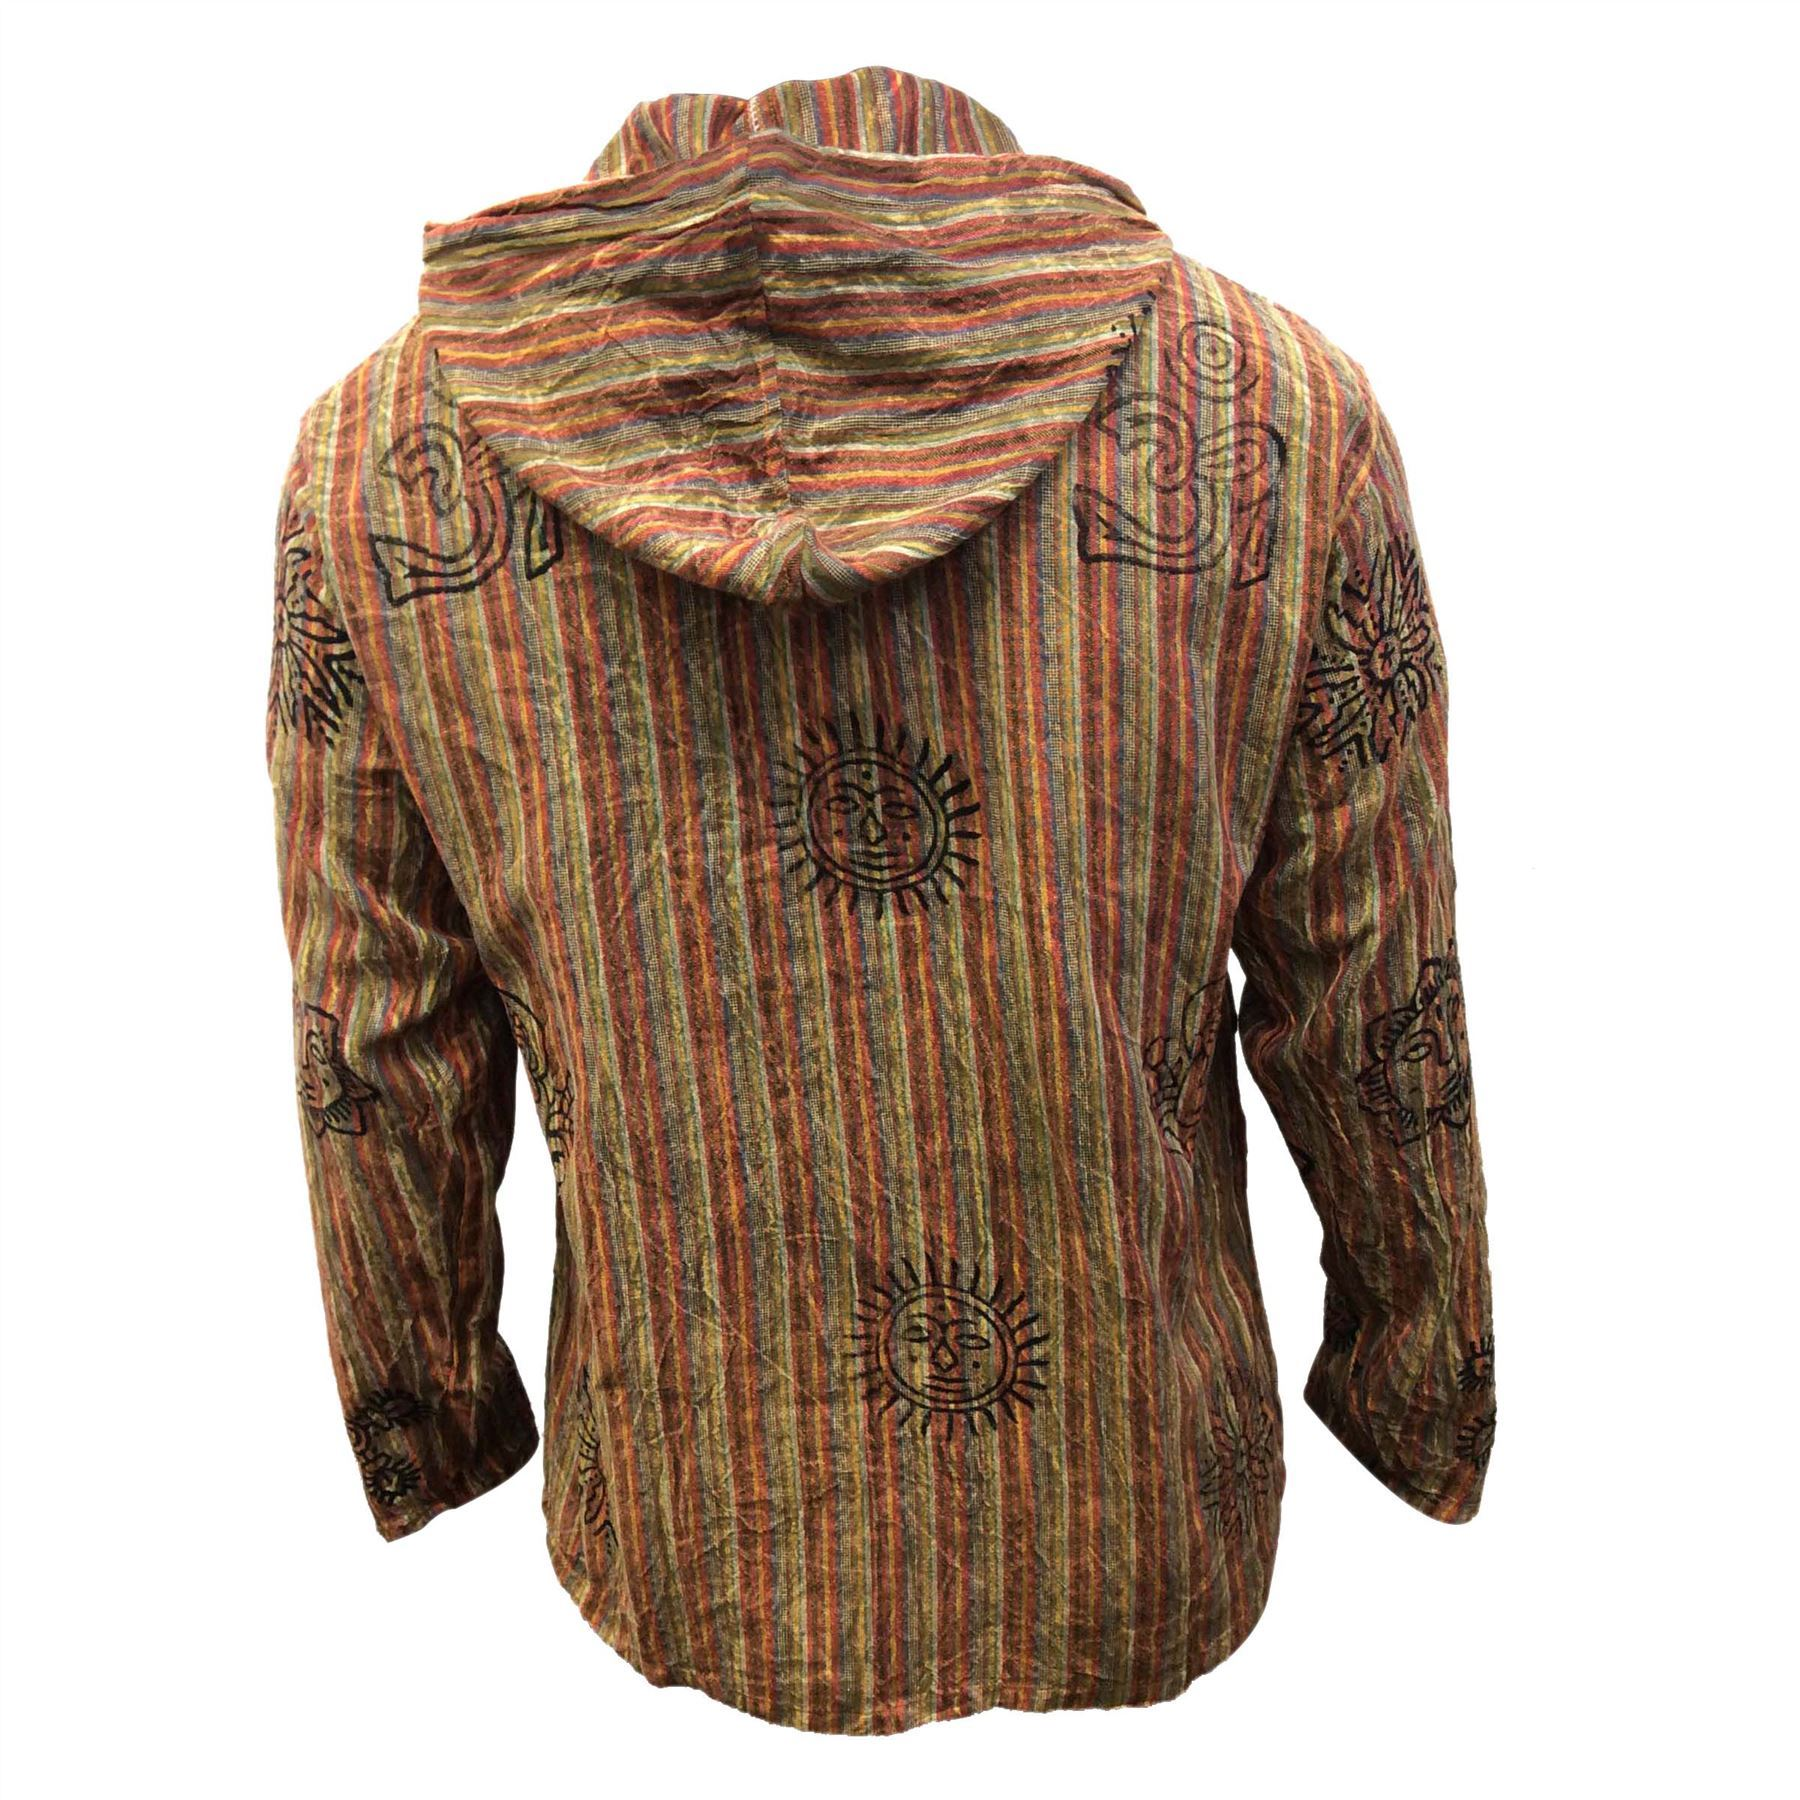 Mens-Stonewashed-Striped-Hooded-Grandad-Shirt-Long-Sleeve-Casual-Hooded-Top thumbnail 22